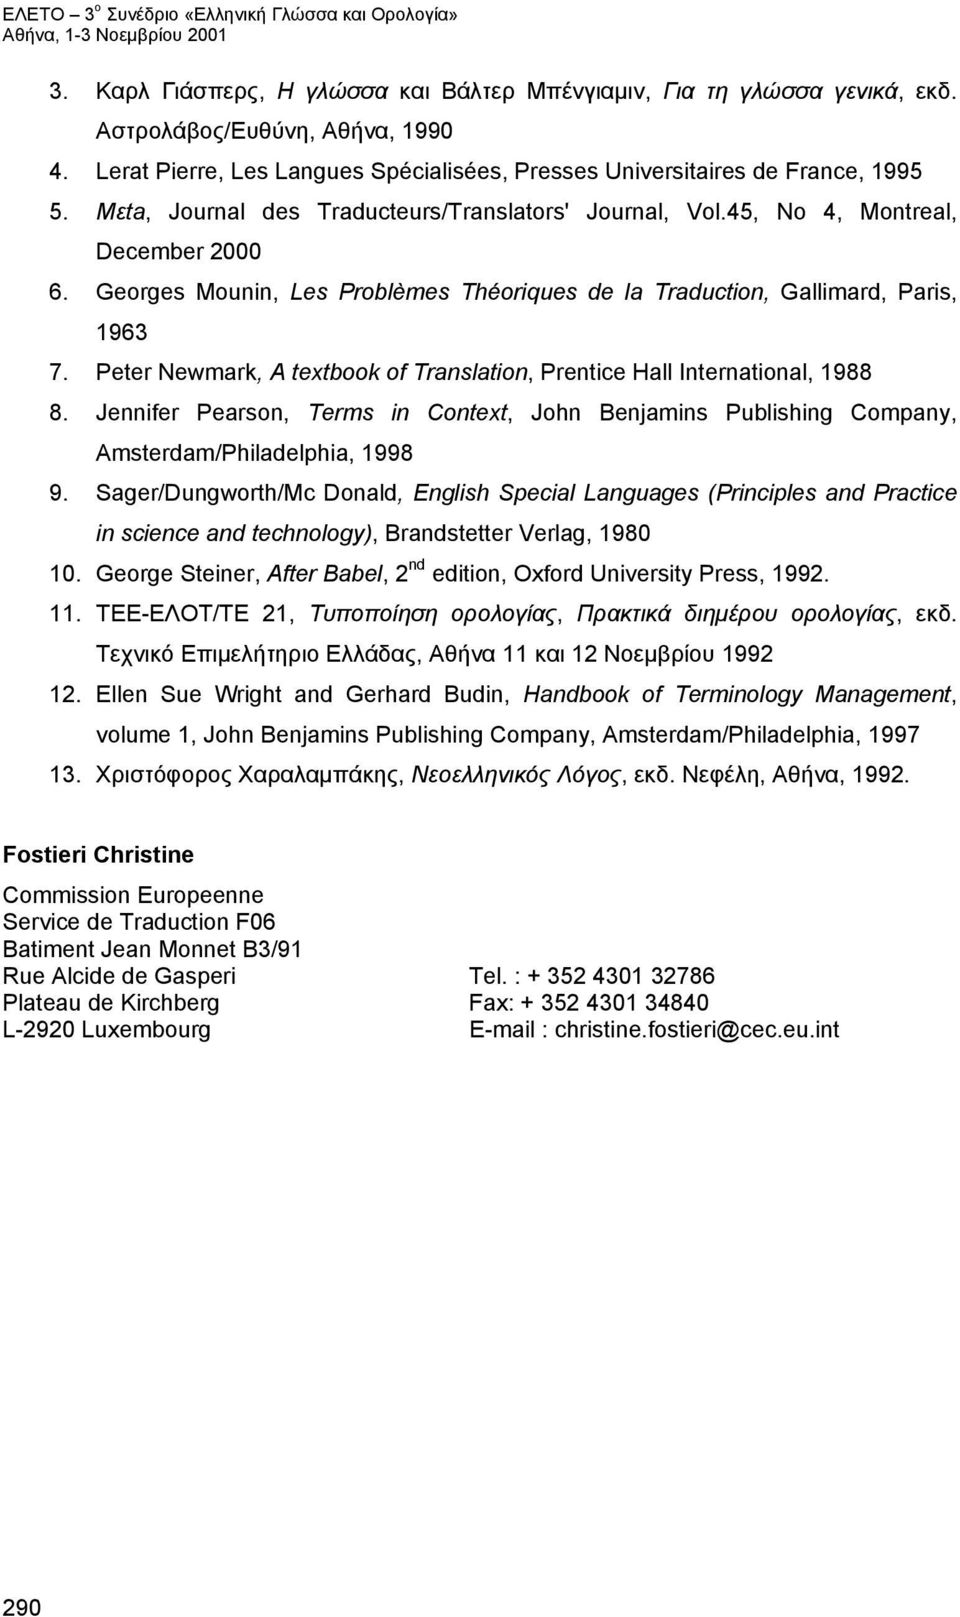 Peter Newmark, A textbook of Translation, Prentice Hall International, 1988 8. Jennifer Pearson, Terms in Context, John Benjamins Publishing Company, Amsterdam/Philadelphia, 1998 9.